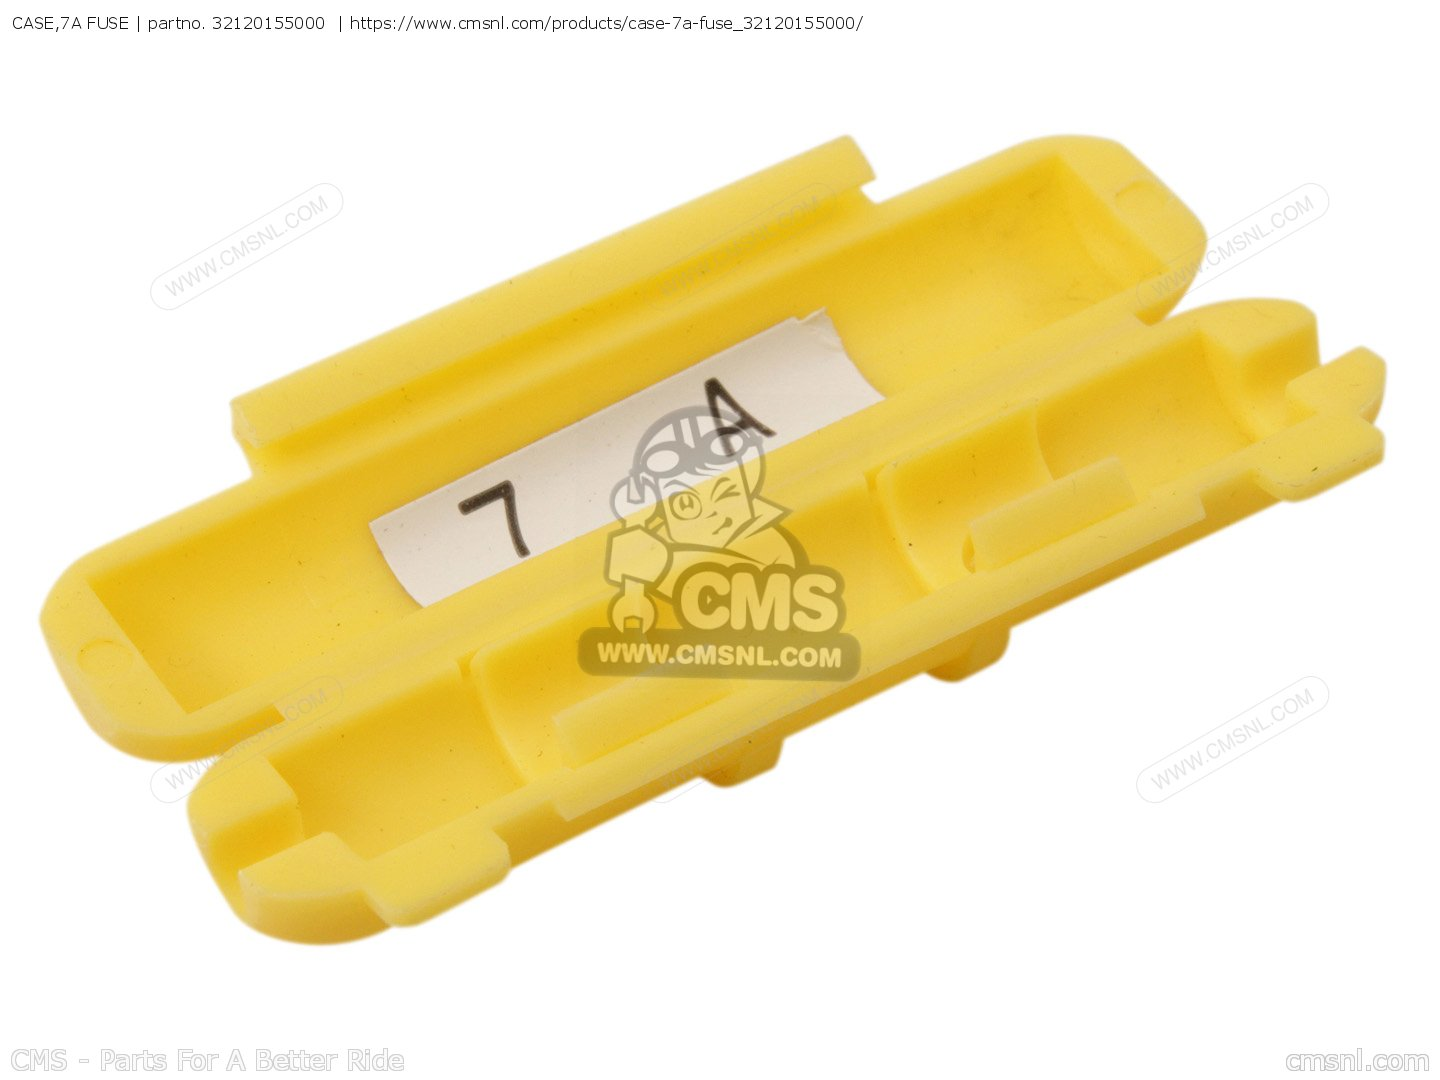 hight resolution of  small image of case 7a fuse